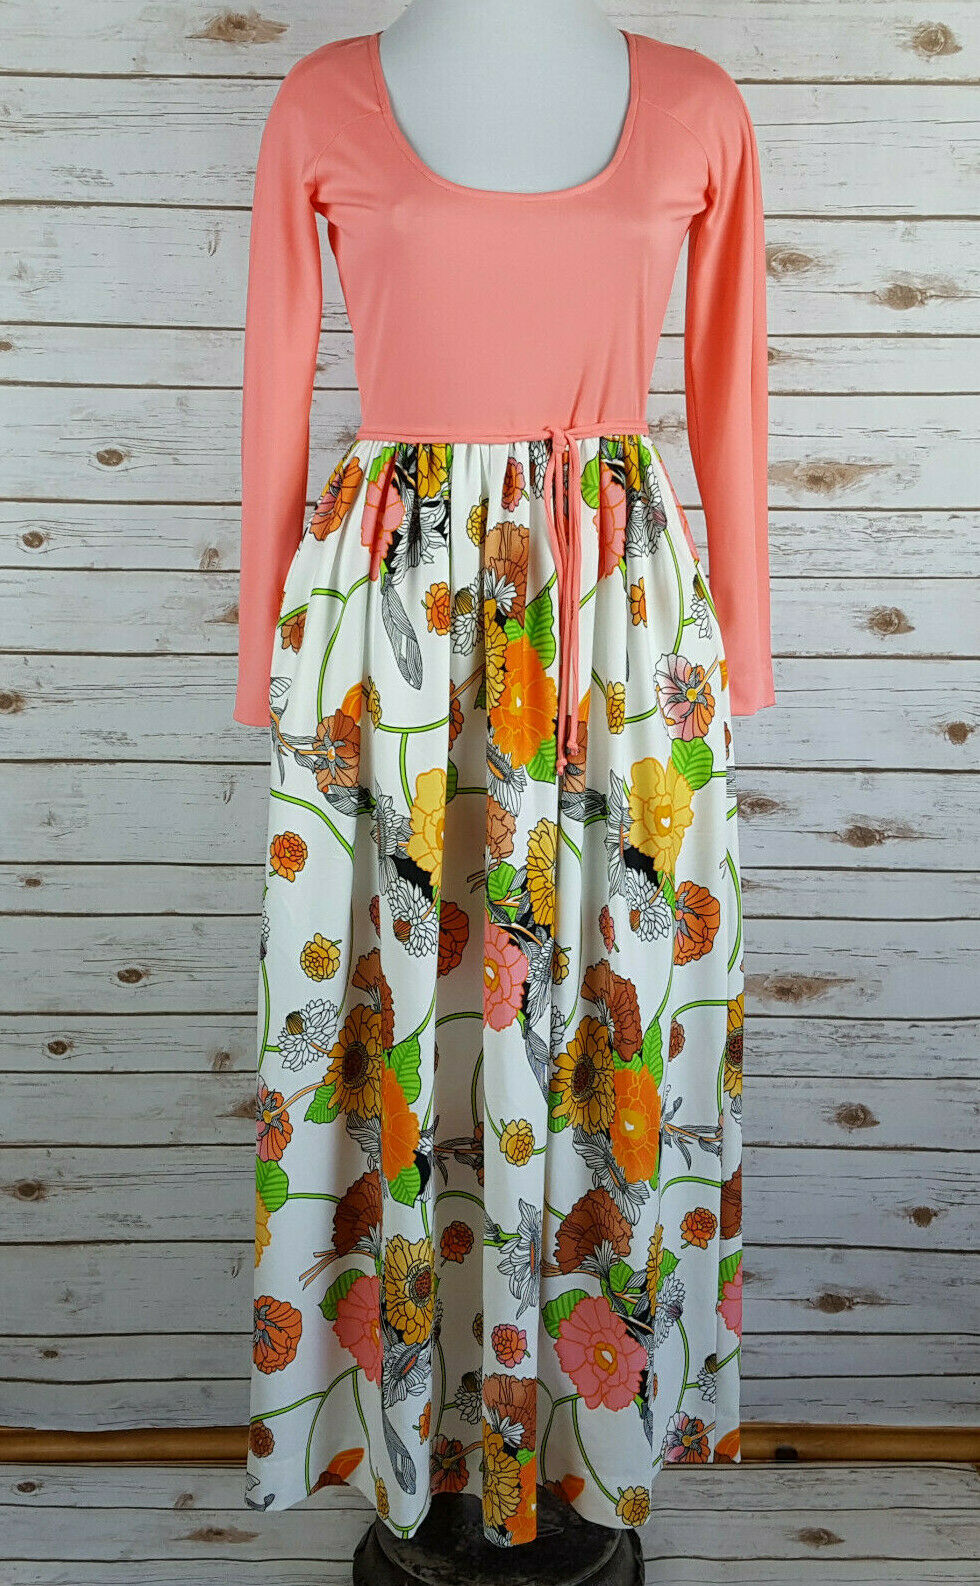 Vintage 70s Victor Costa Bright Floral Maxi Dress S Garden Party Romantic Mod